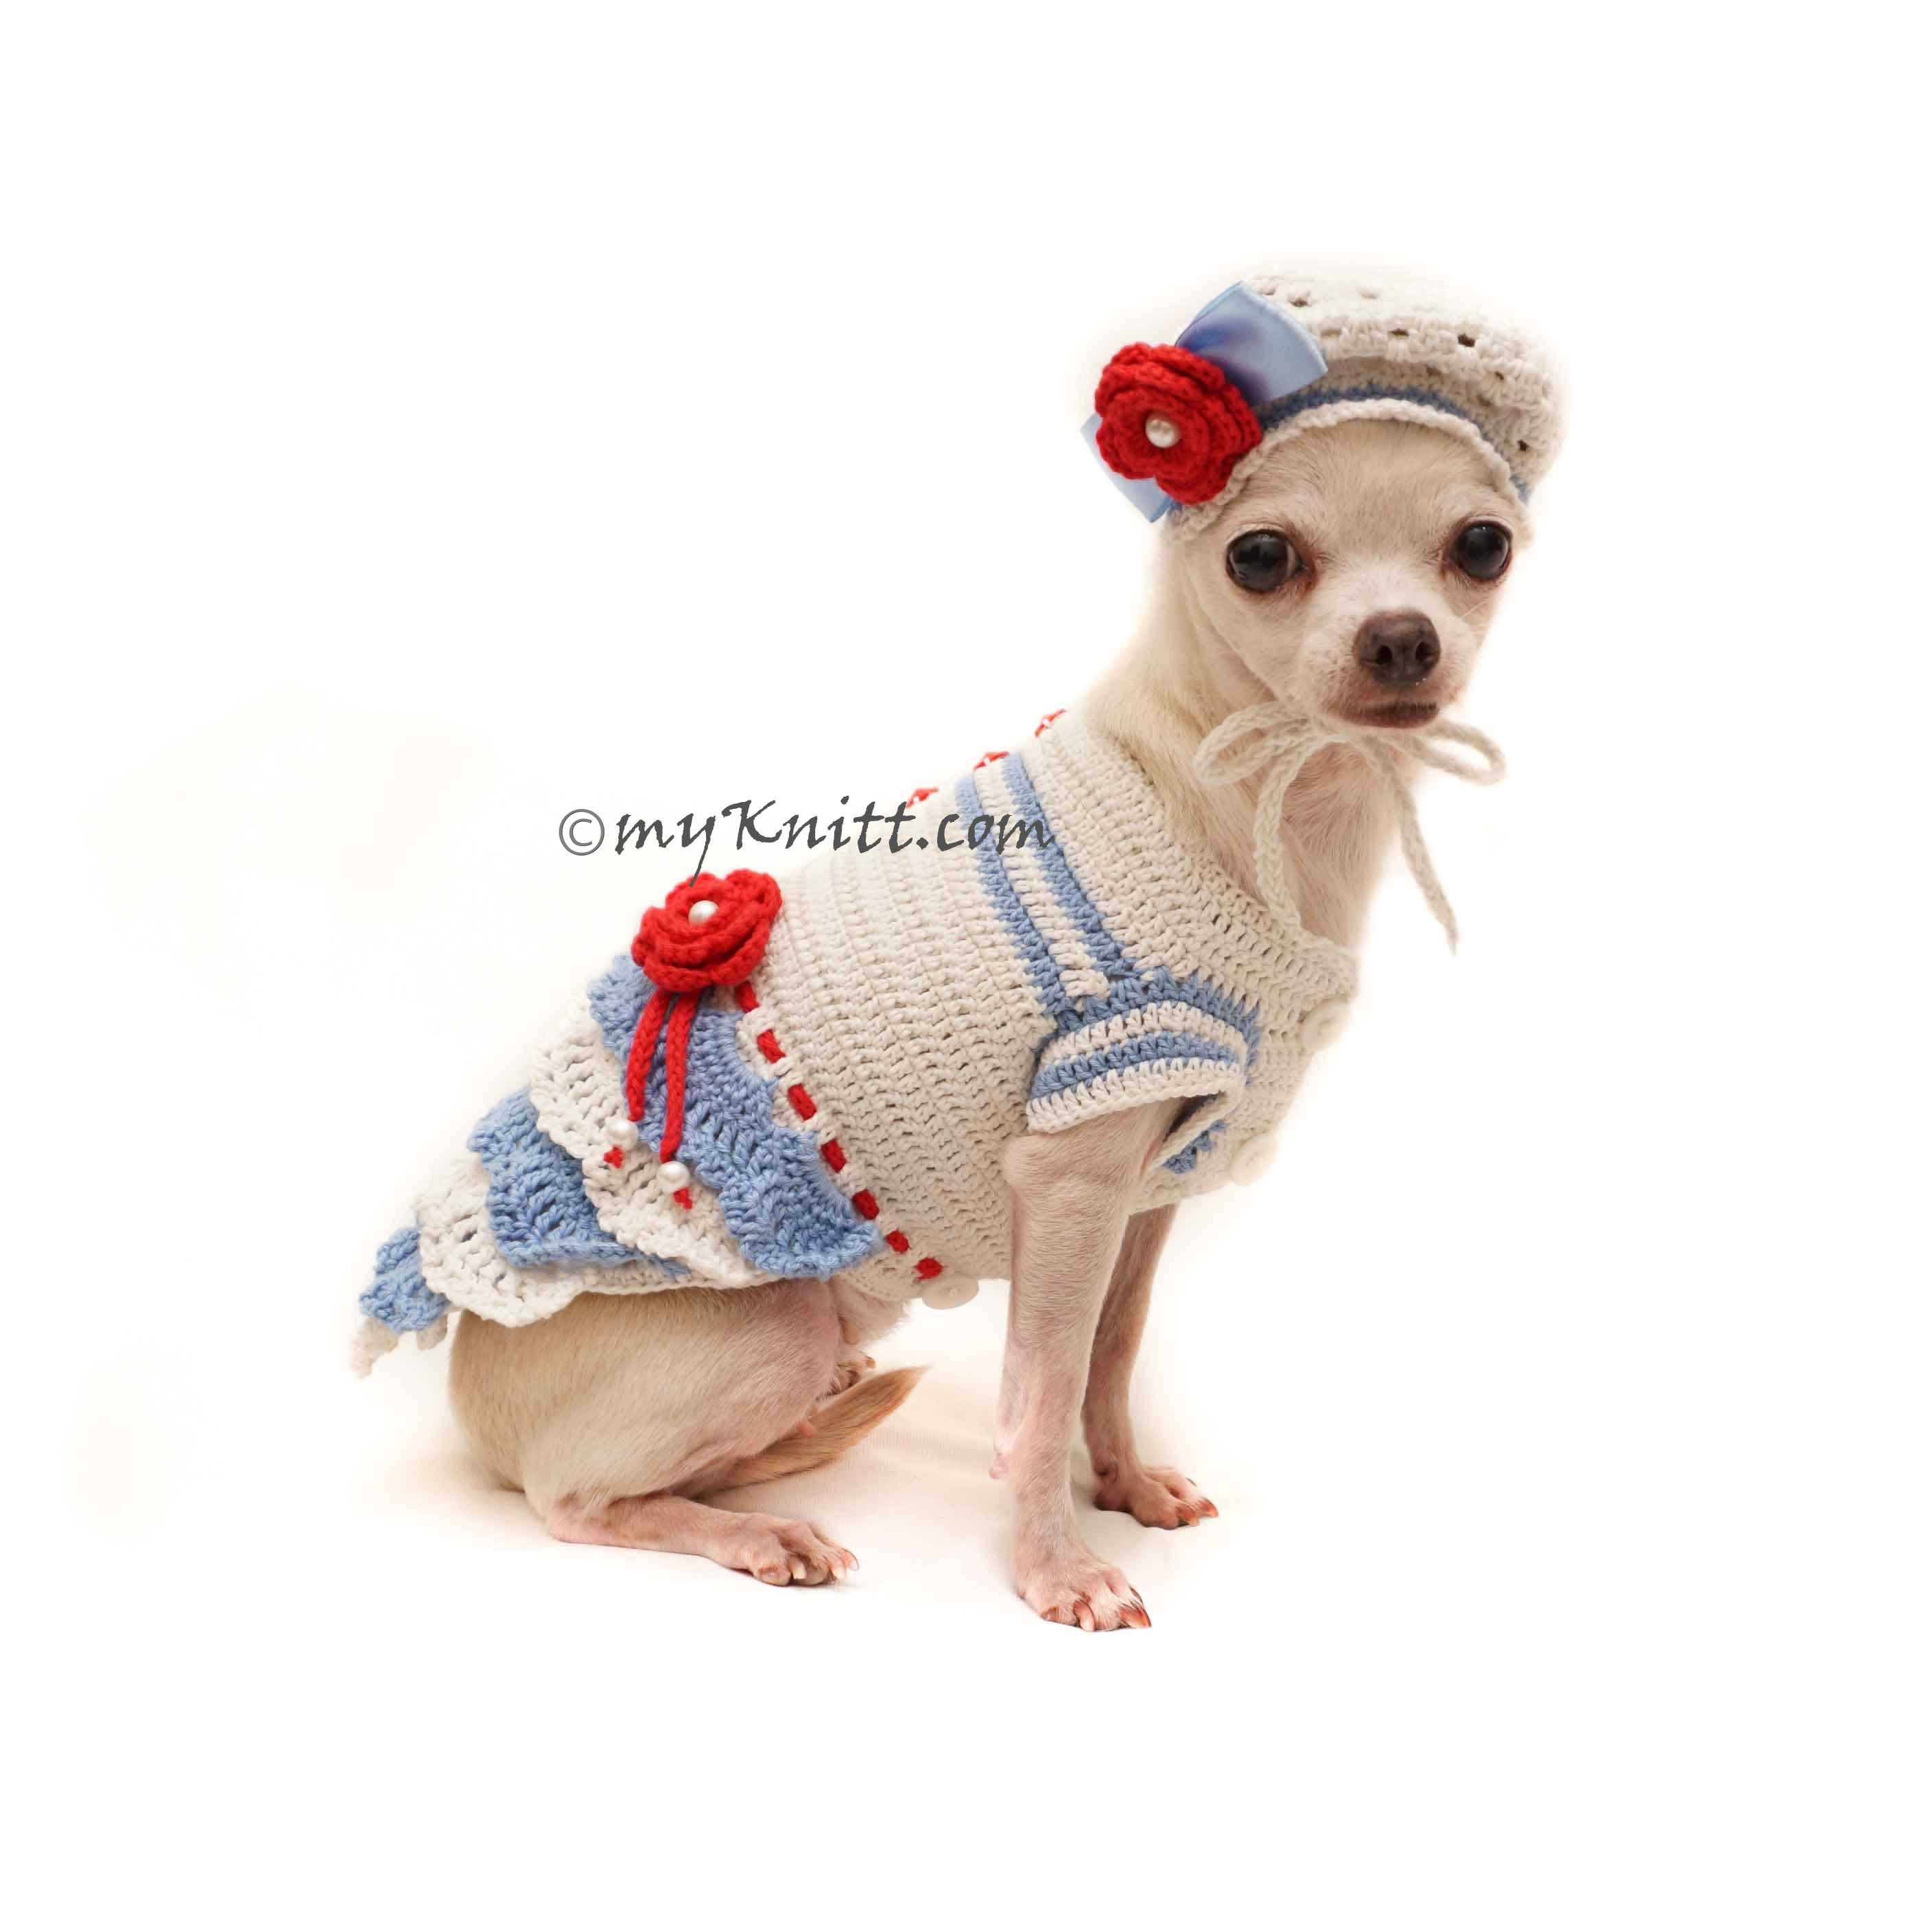 Summer Blue Dog Dress Crochet with Dog Hat Beret Df143 by Myknitt